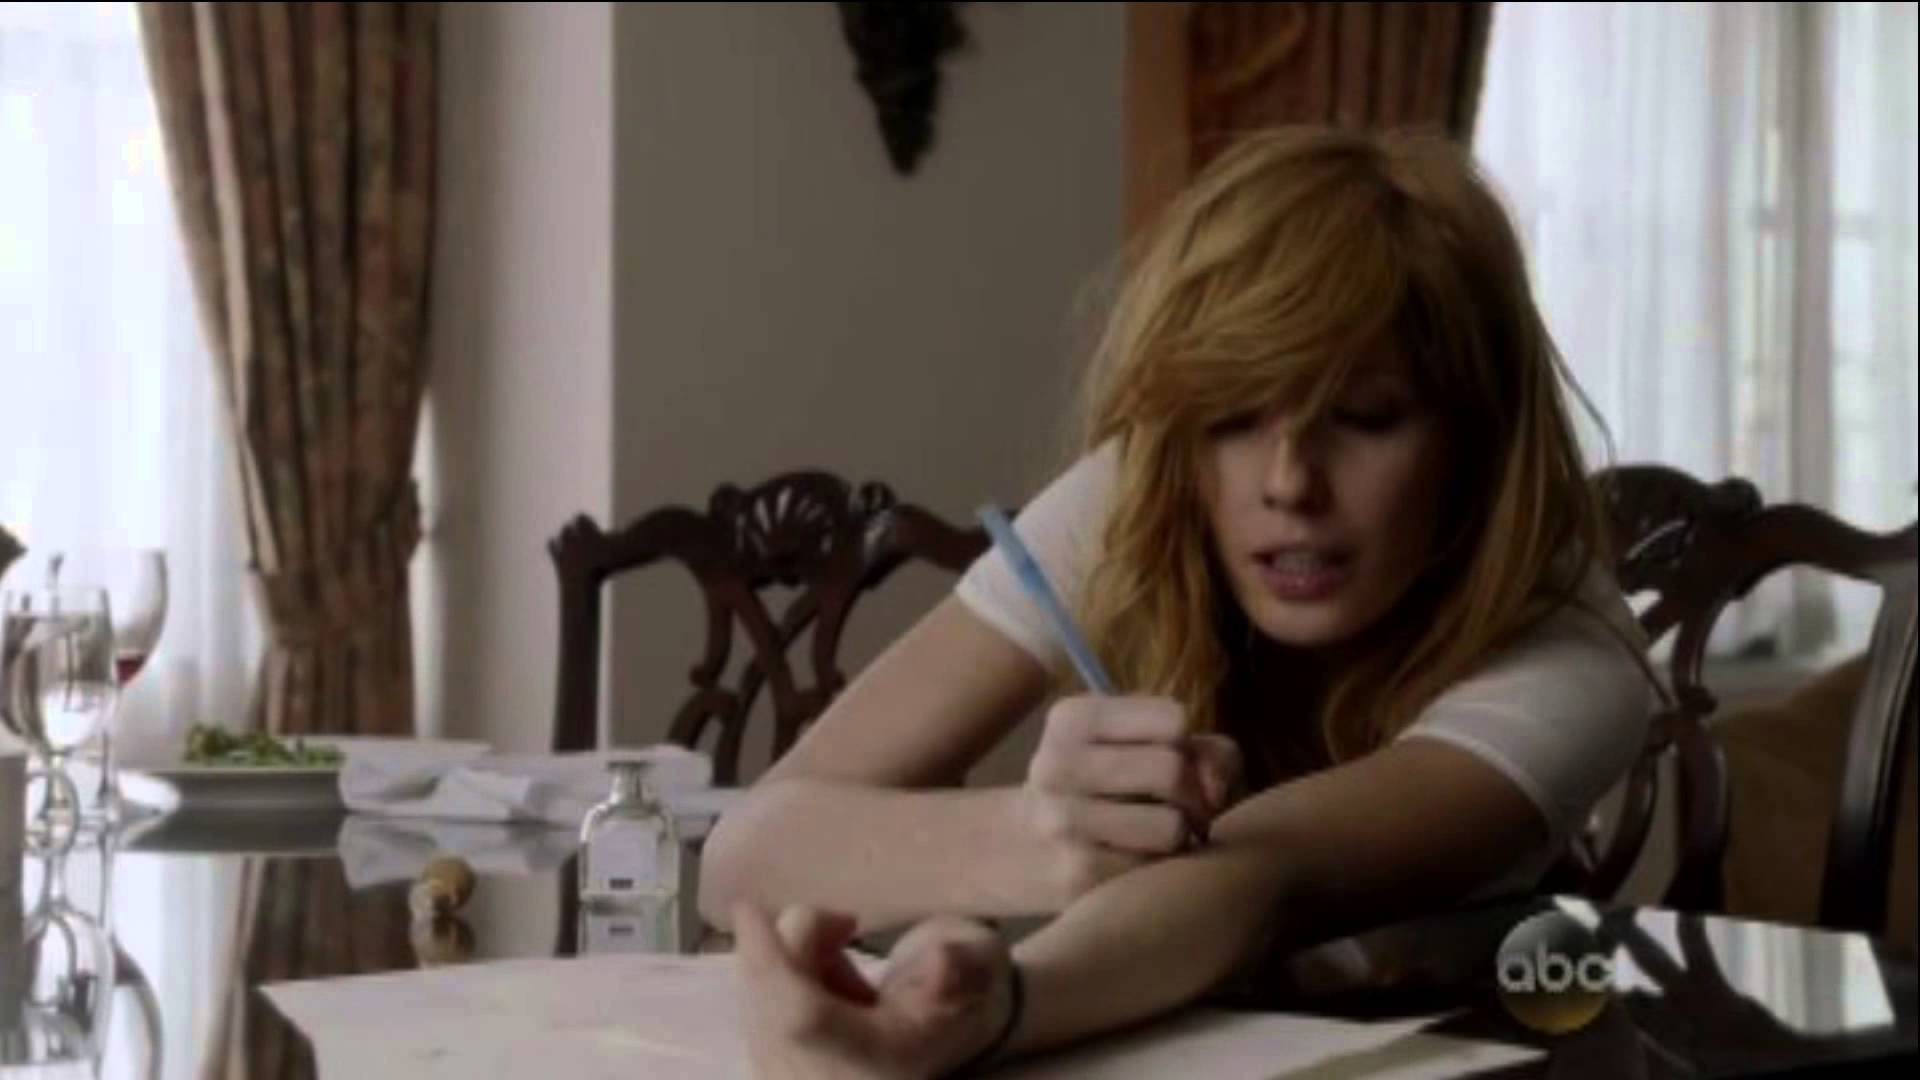 1920x1080 - Kelly Reilly Wallpapers 9